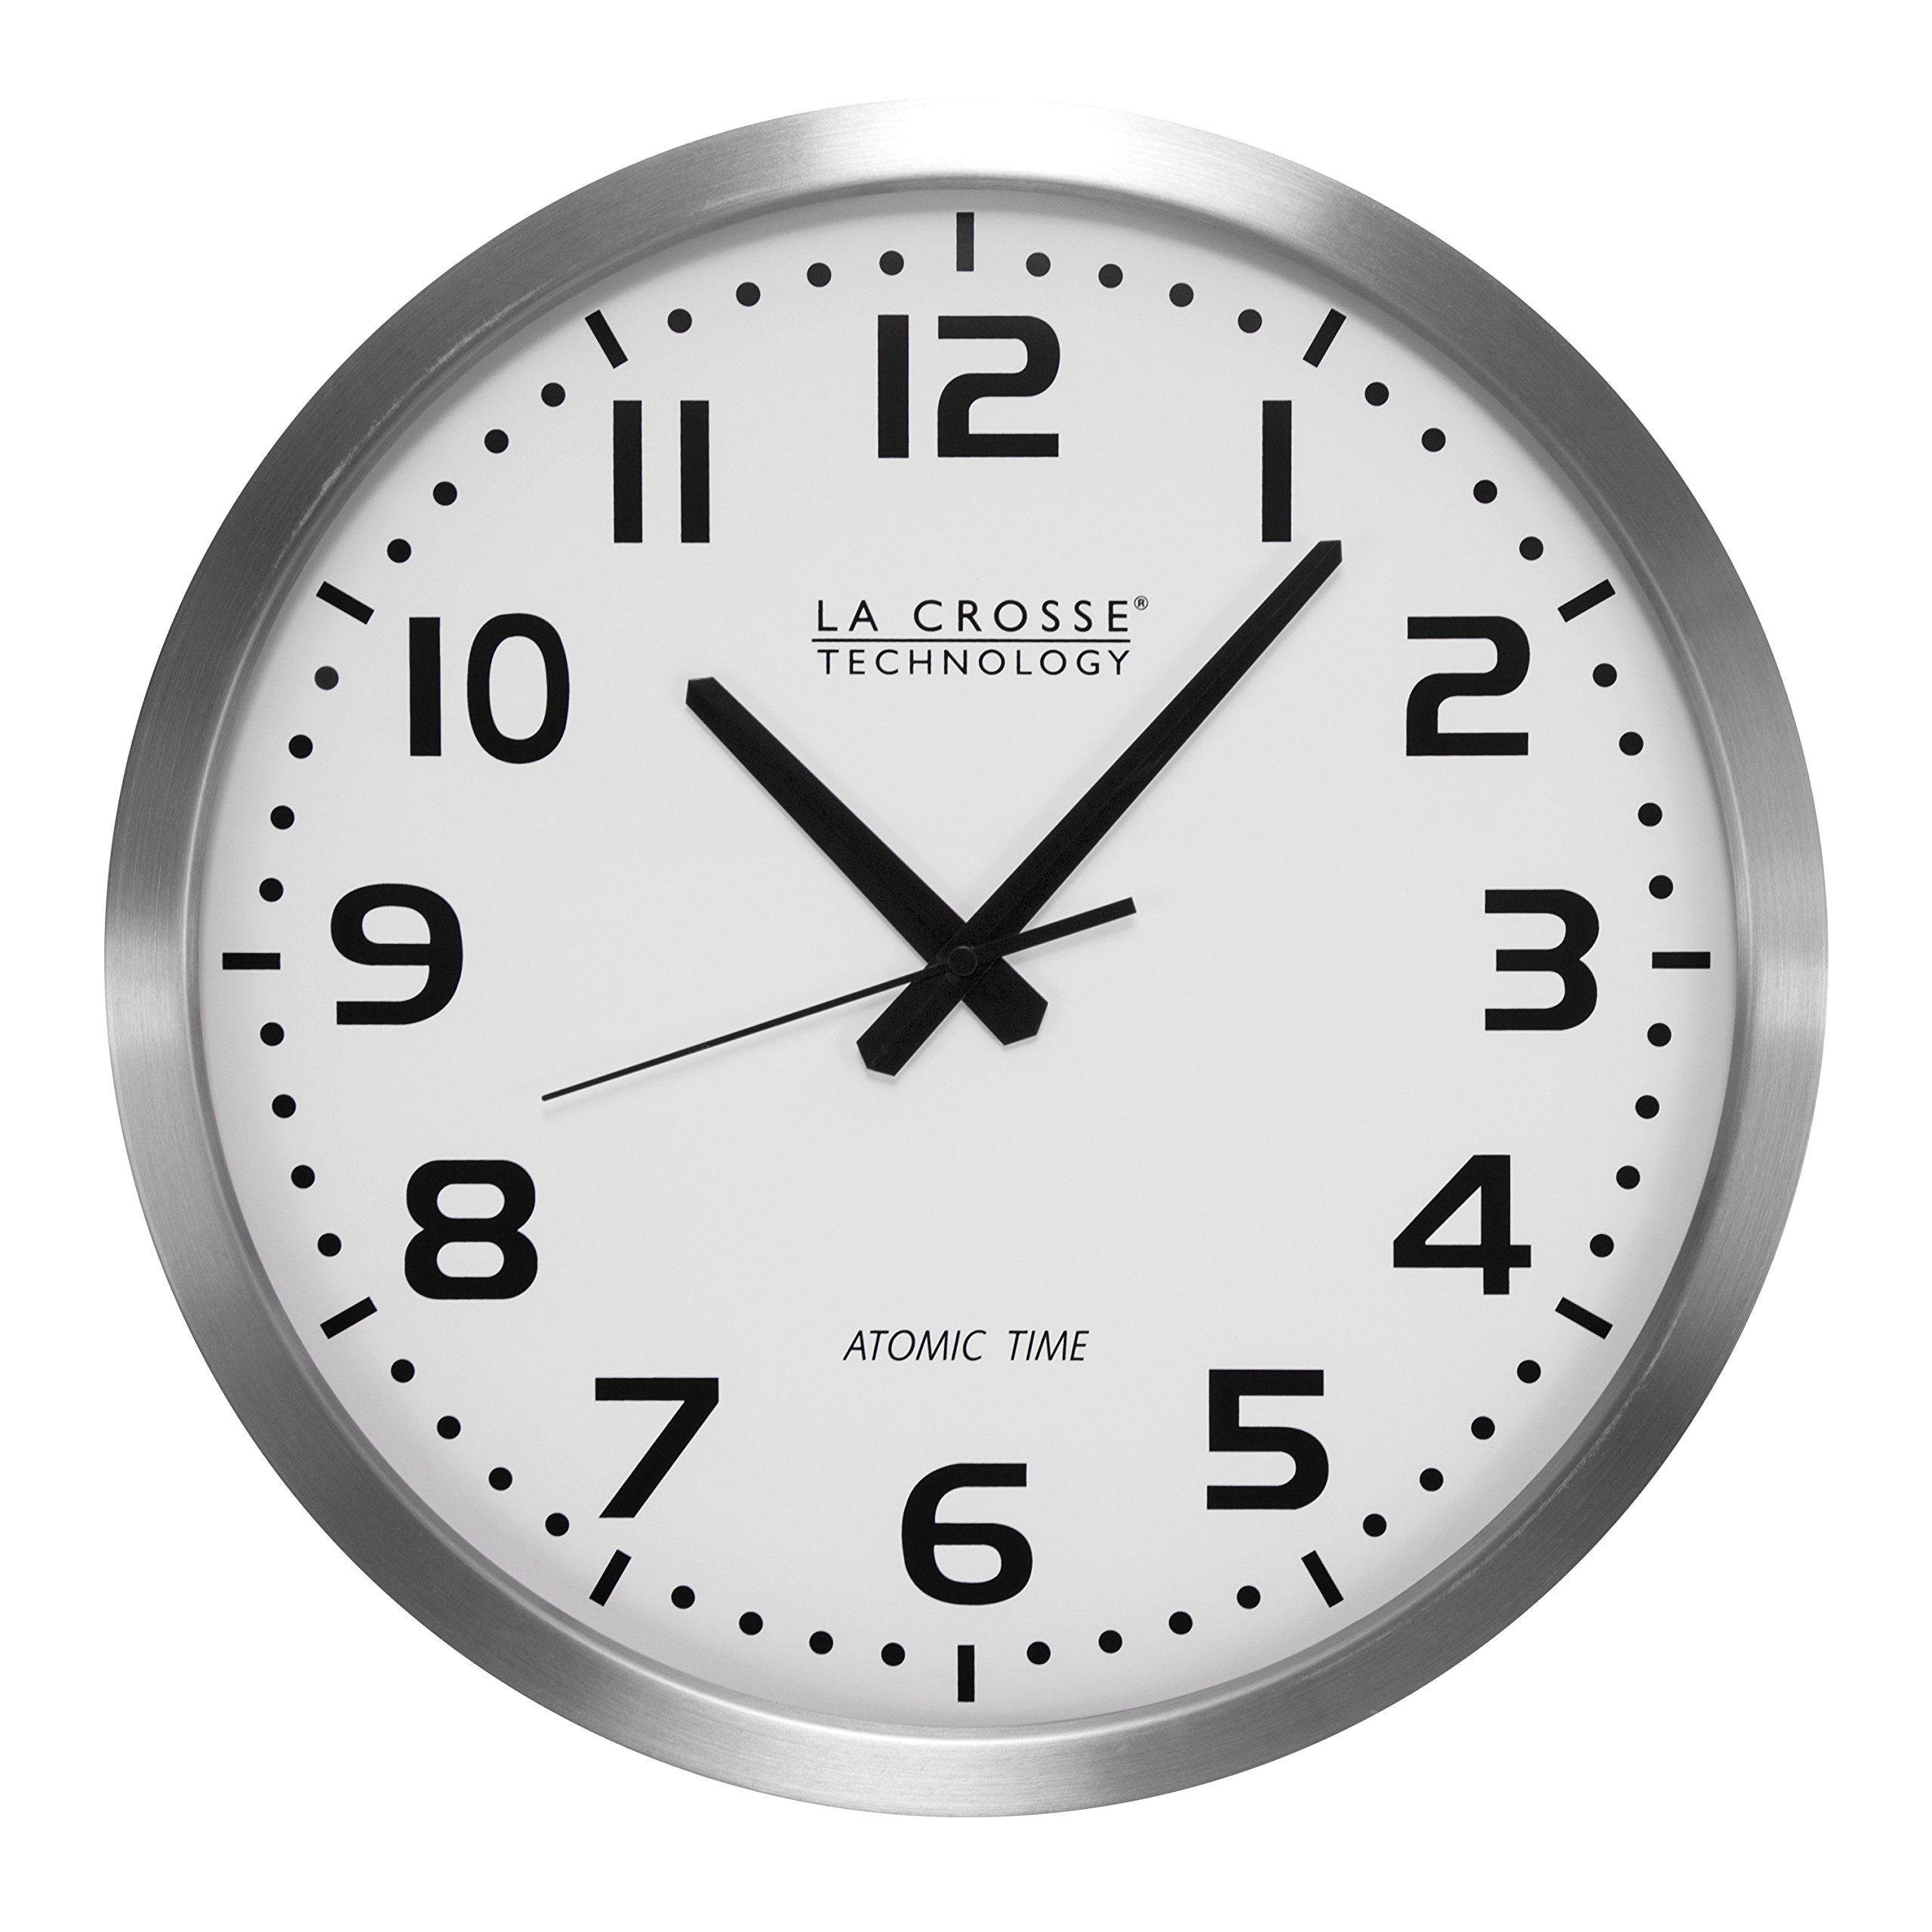 La Crosse Technology WT-3161WH 16 Inch Stainless Steel Atomic Clock - White Dial by La Crosse Technology